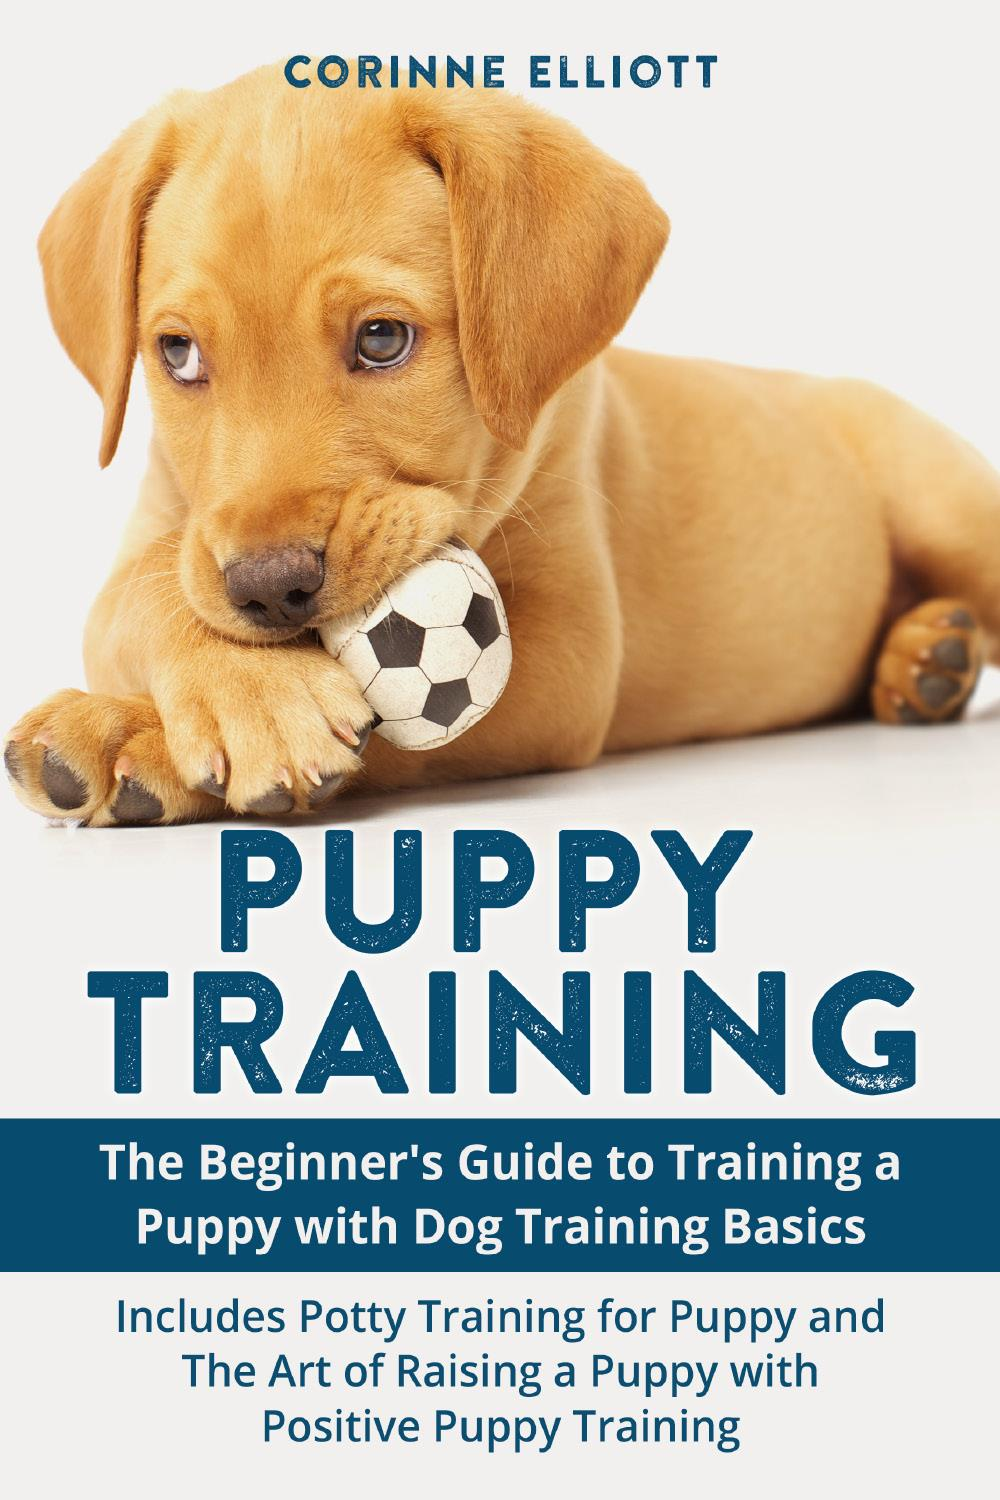 Puppy Training Guide (2 Books in 1)